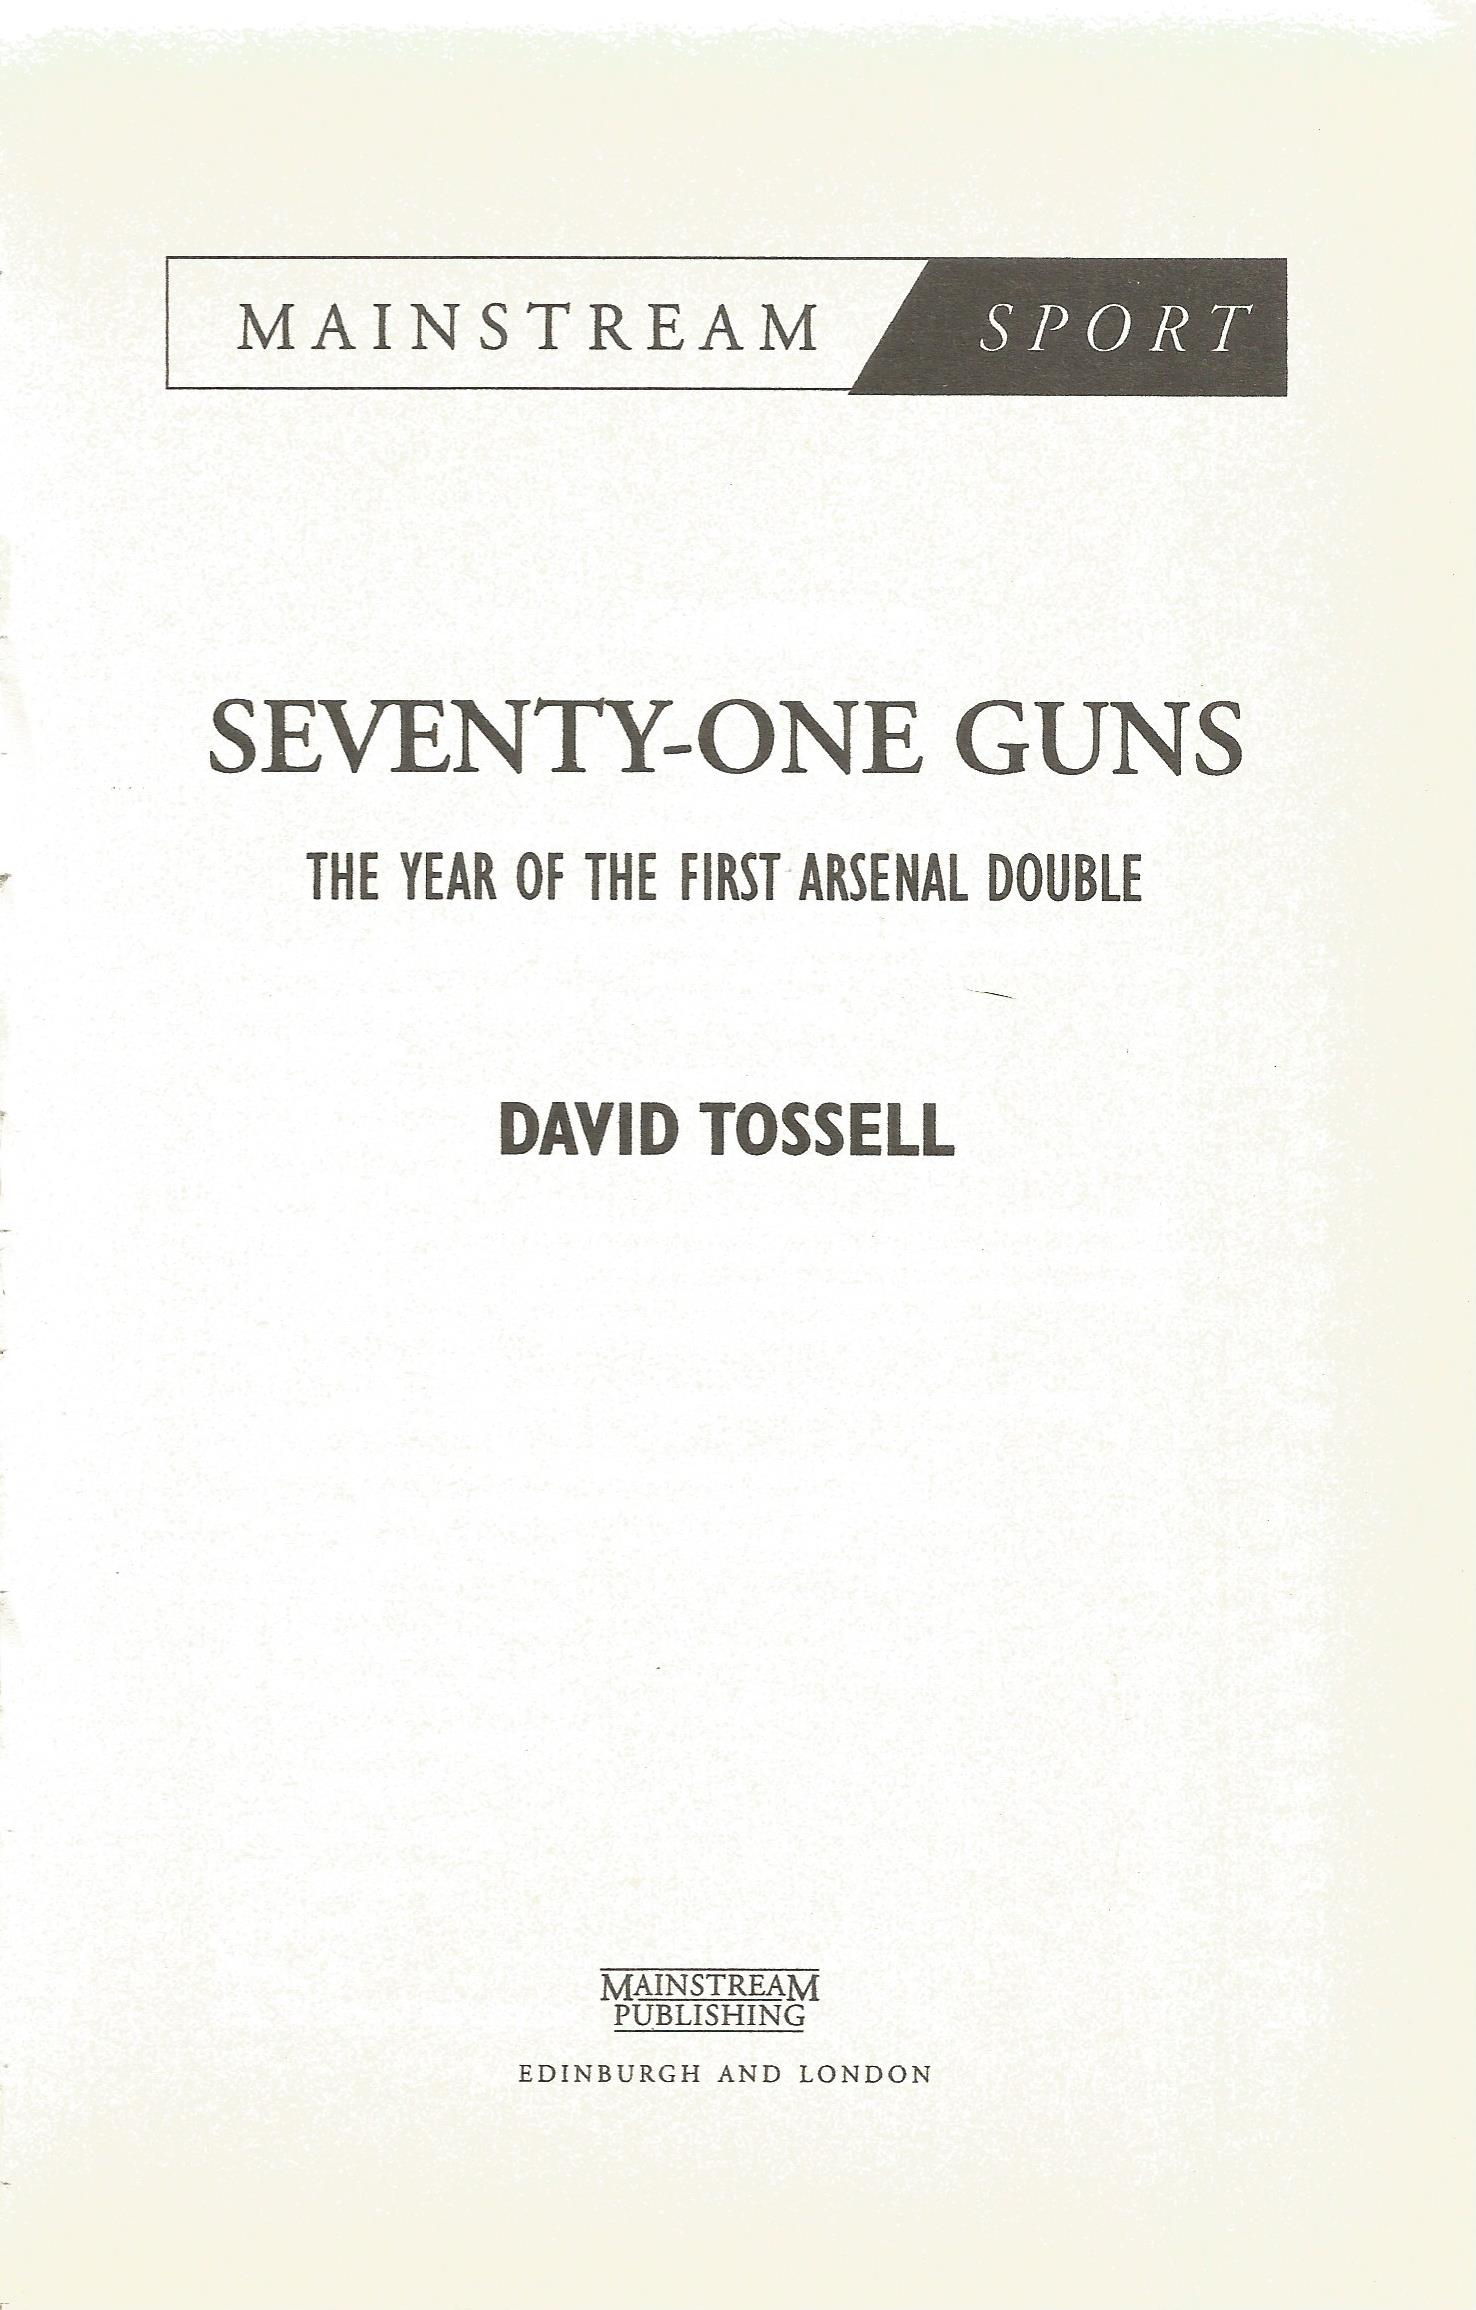 Seventy One Guns by David Tossell. The Year Of the First Arsenal Double. First Edition, Paperback - Image 2 of 3